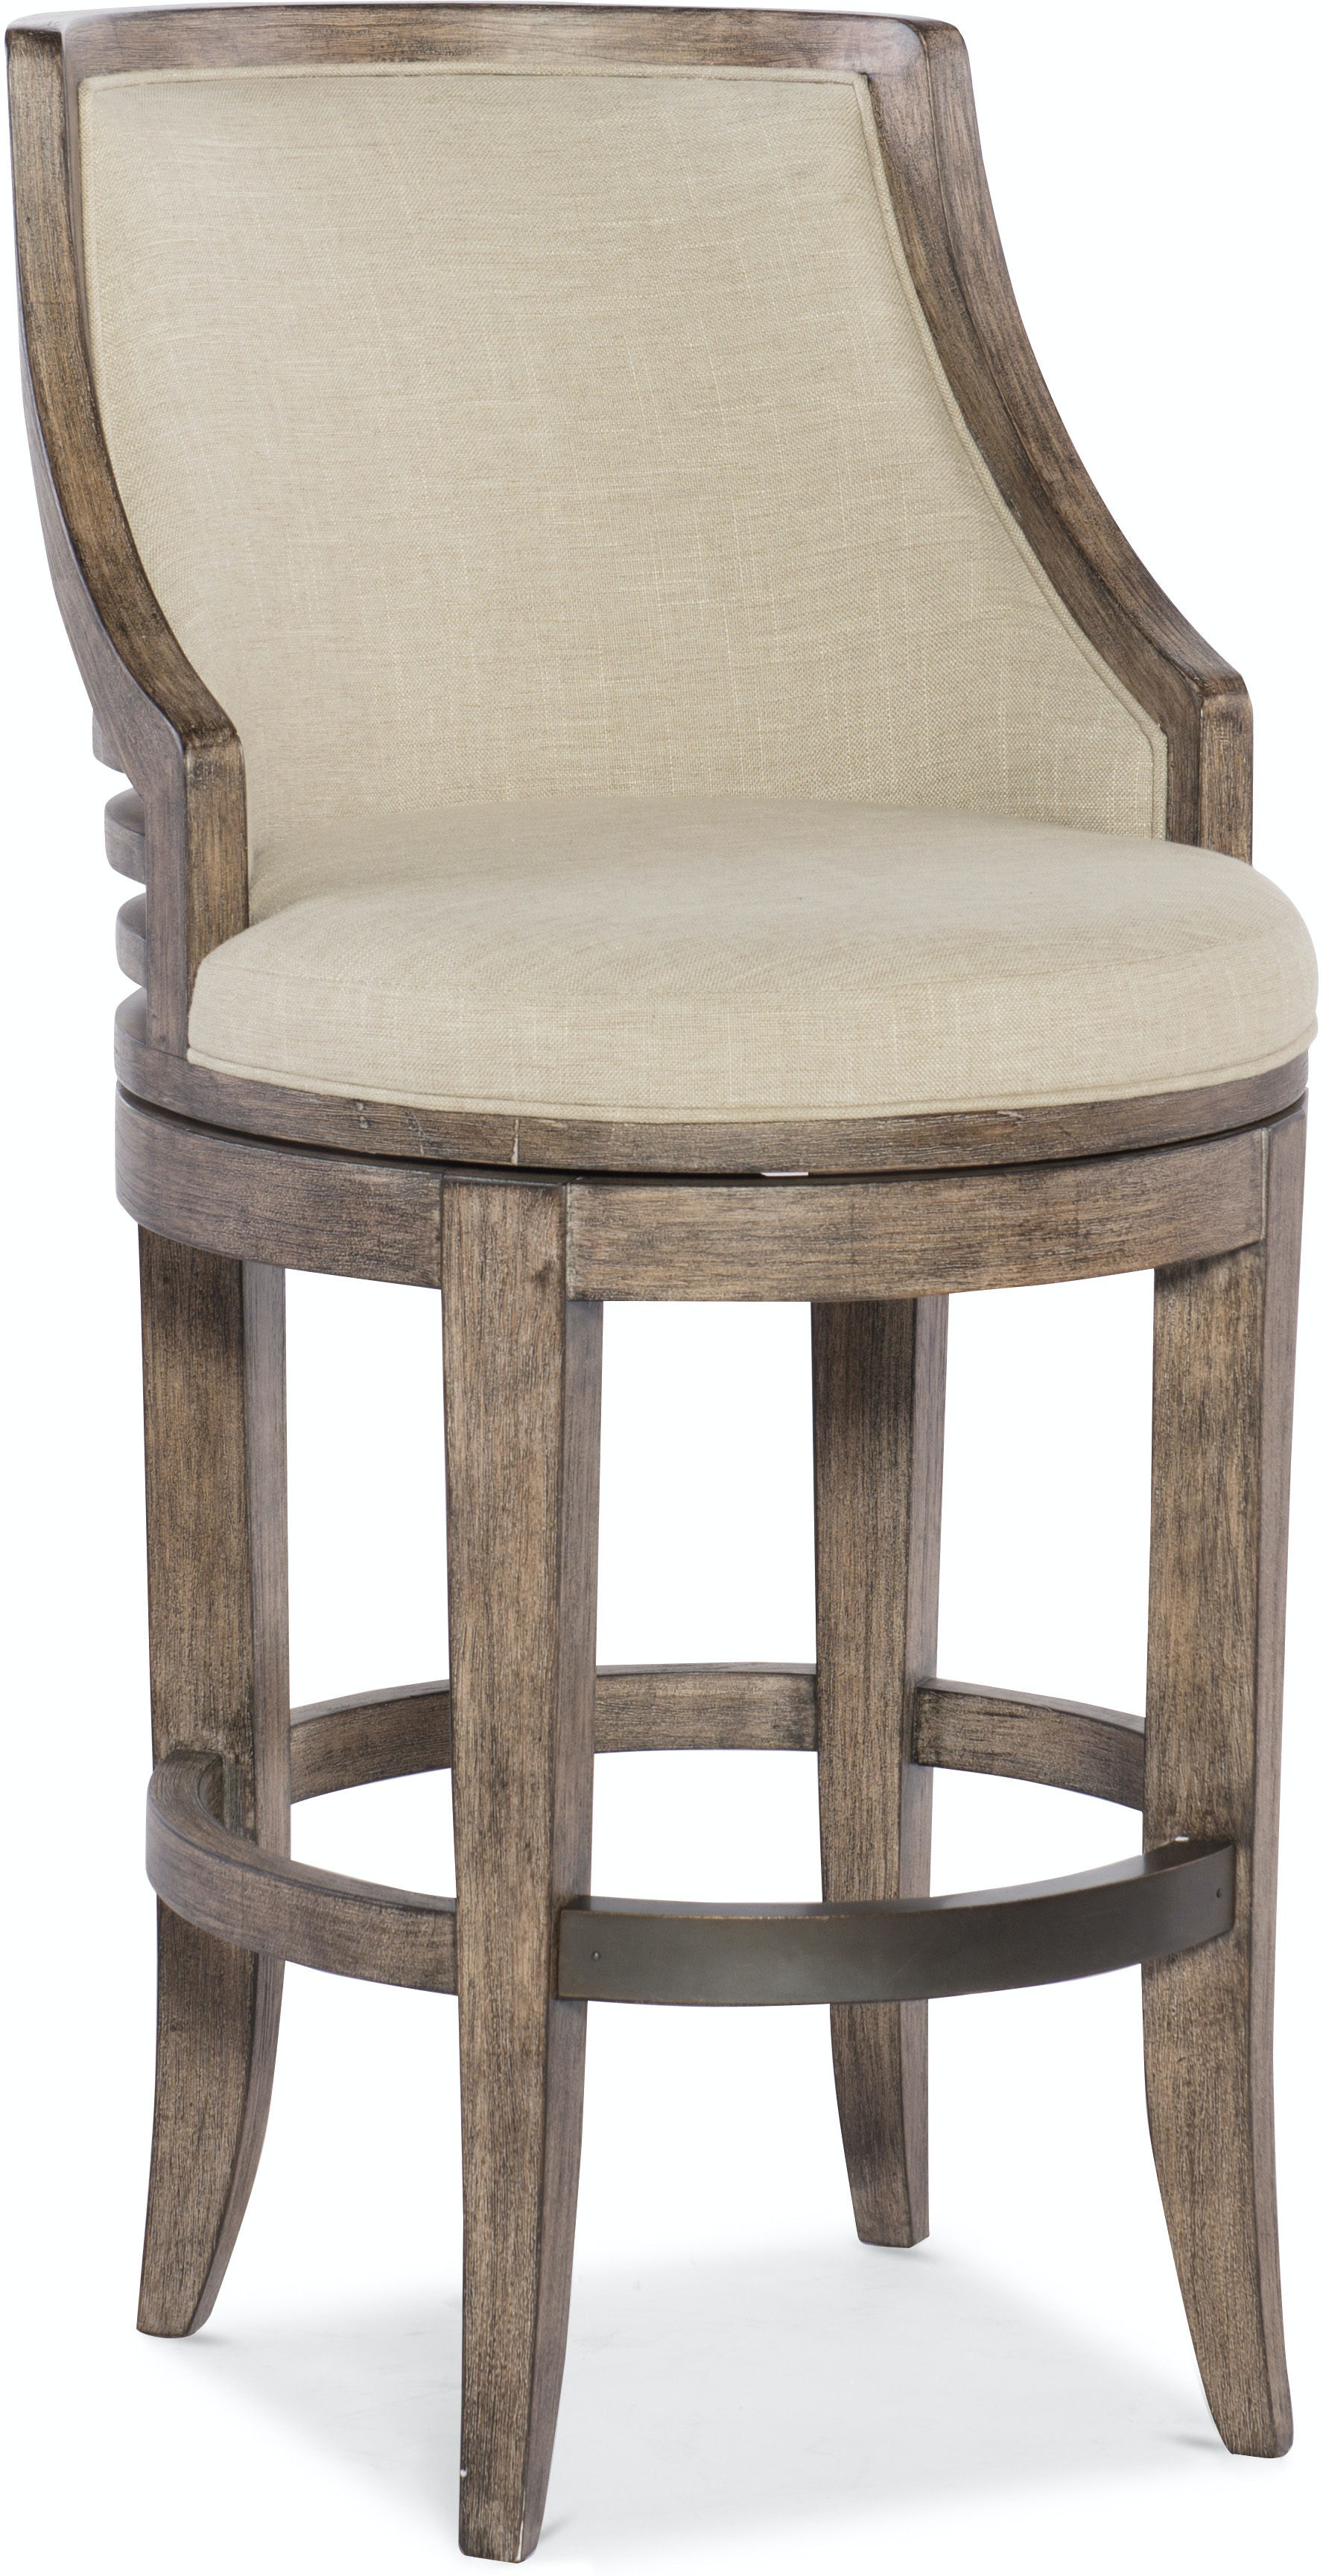 Peachy Hooker Furniture Dining Room Lainey Transitional Barstool Bralicious Painted Fabric Chair Ideas Braliciousco